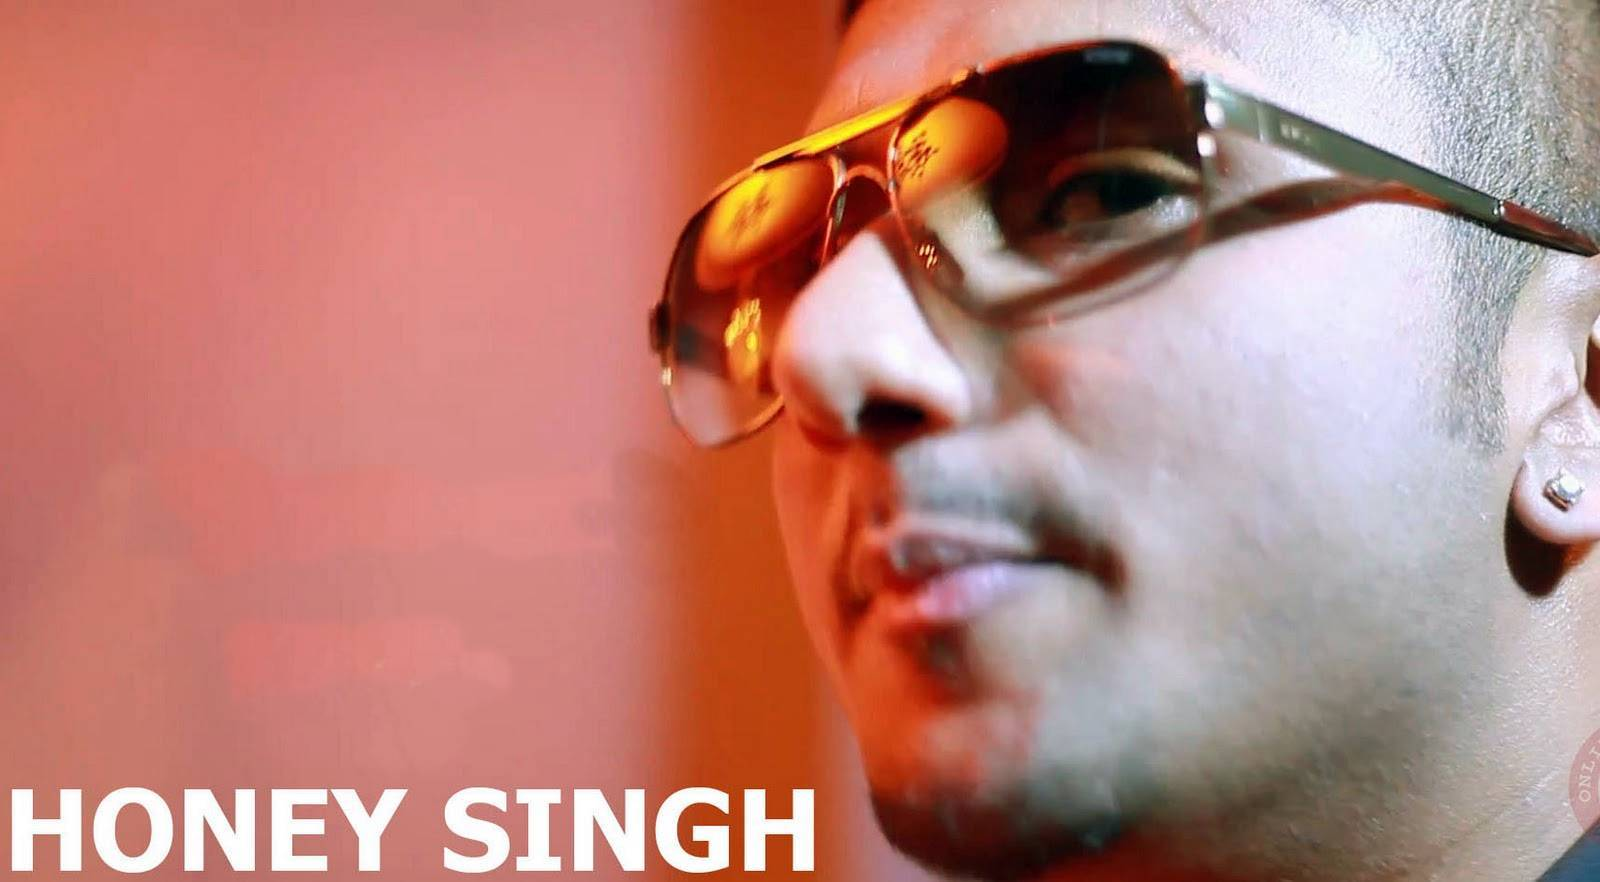 Honey singh Wallpapers - Free by ZEDGE